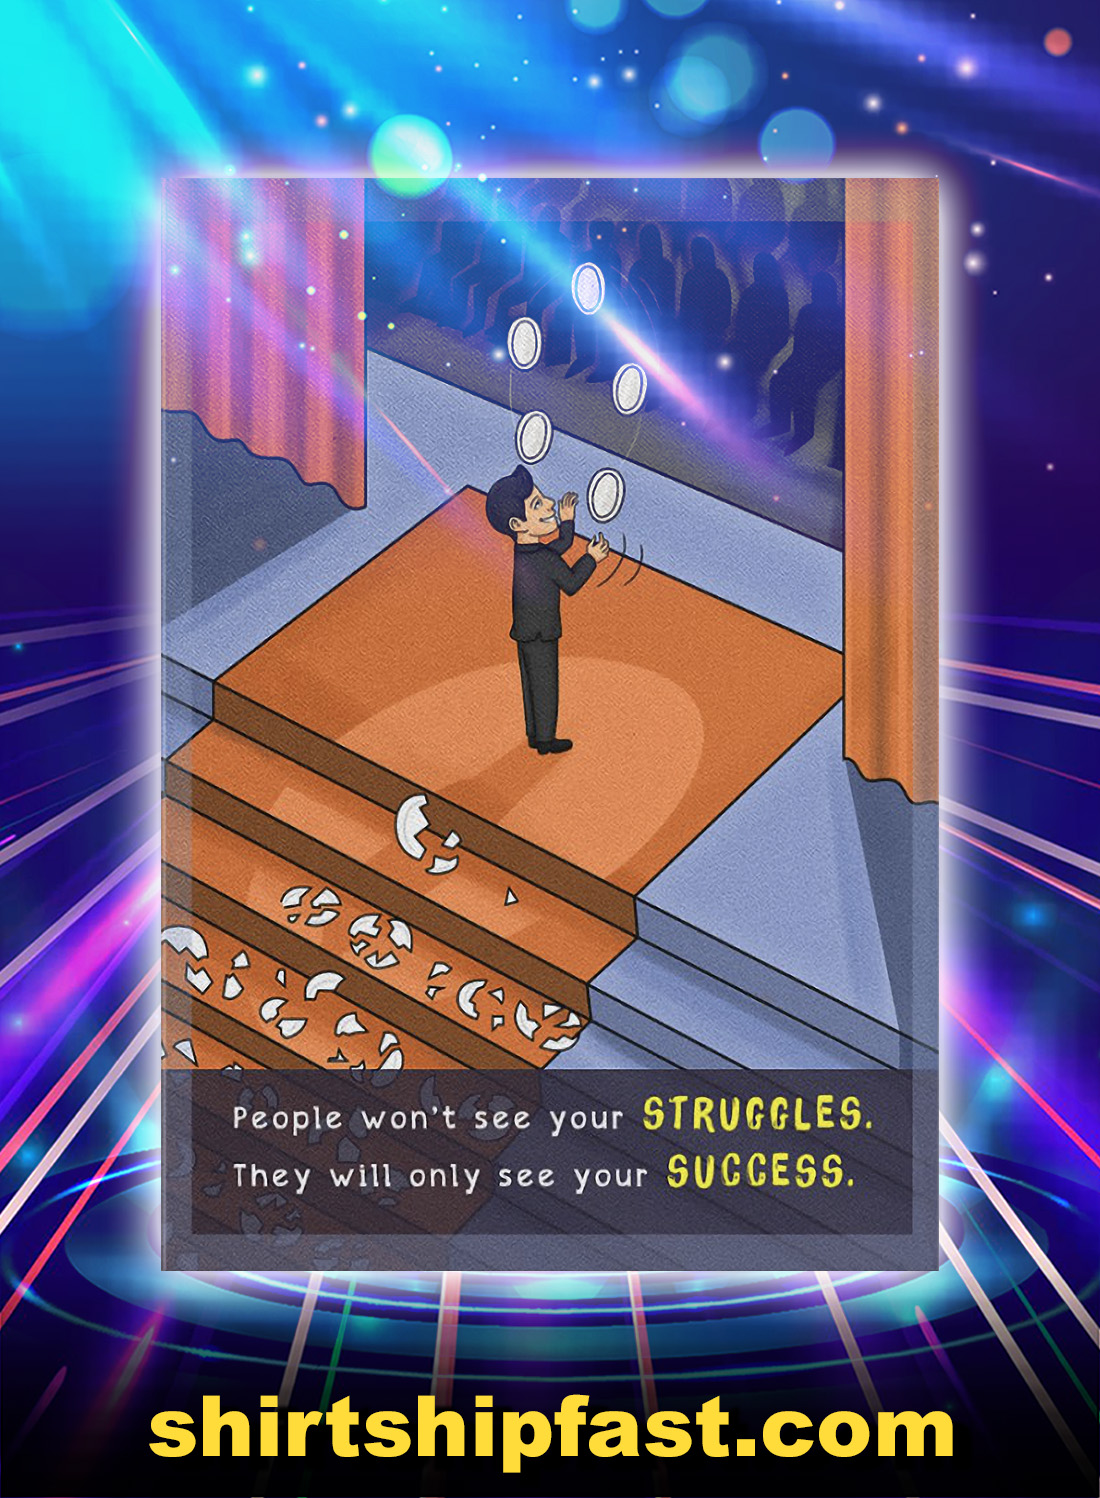 People won't see your struggles they will only see your success poster